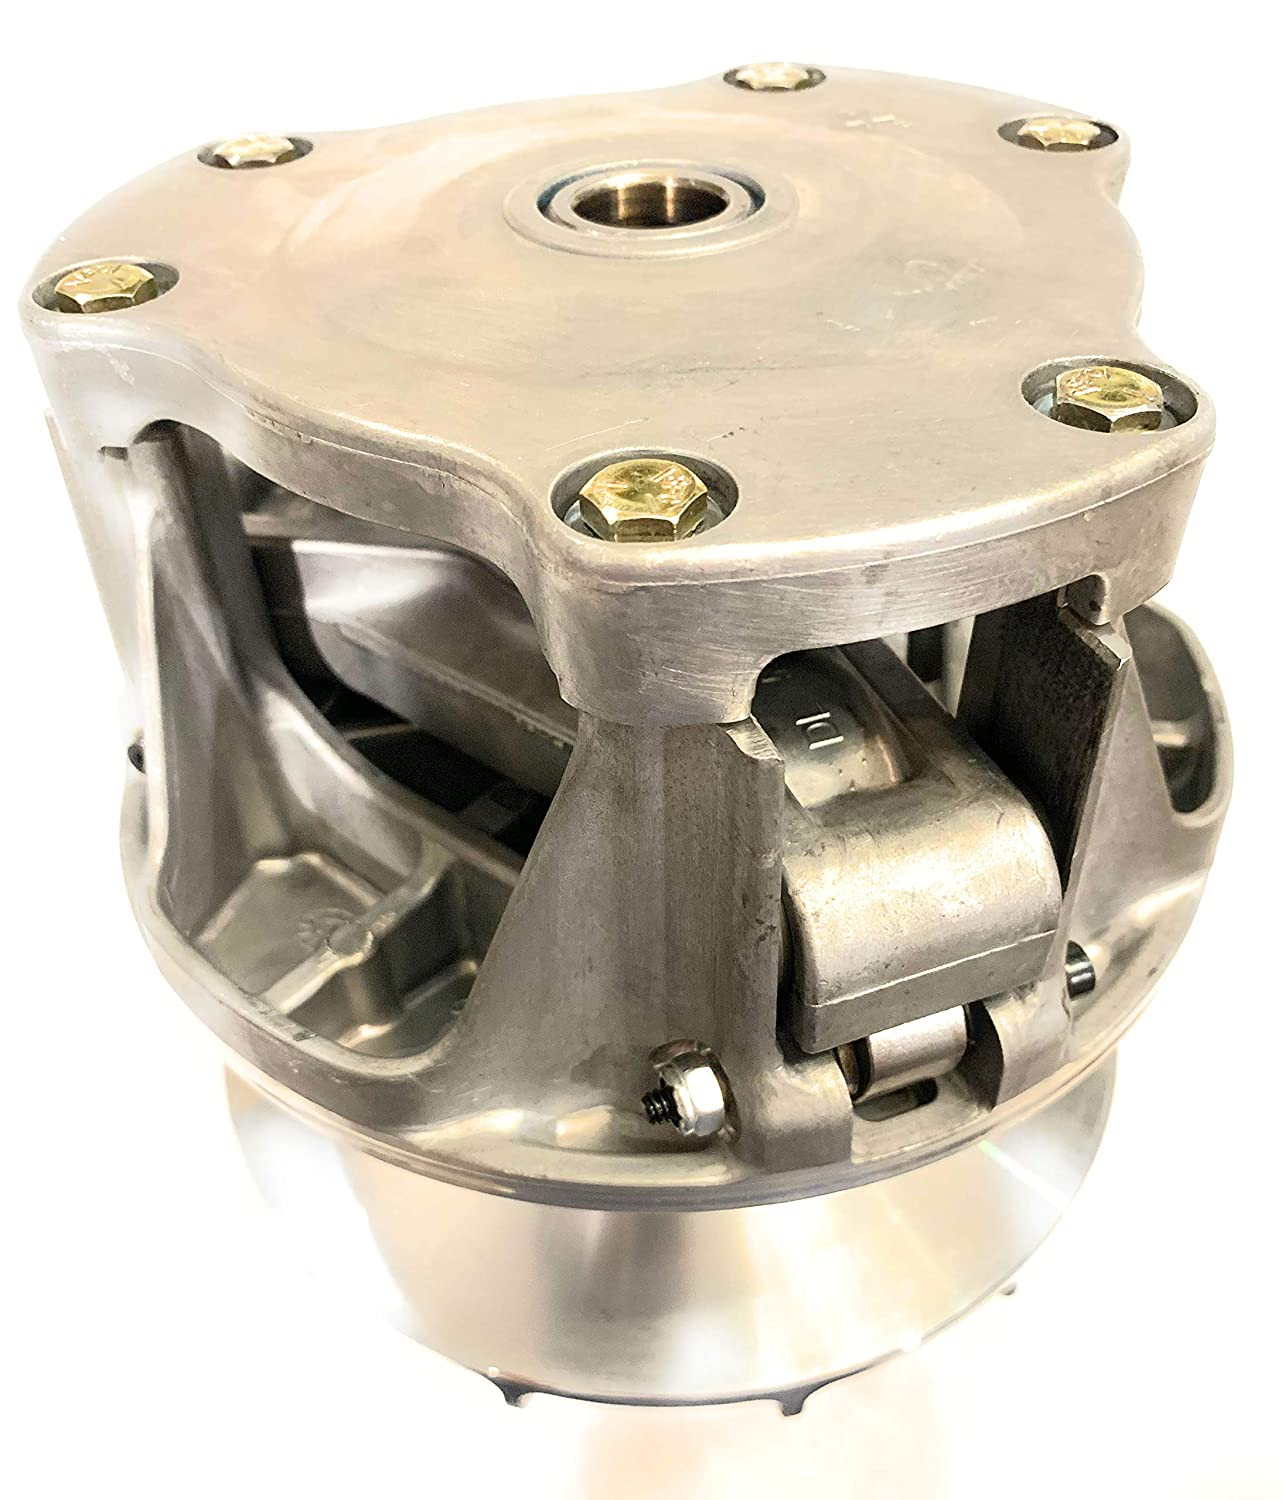 2016-2019 Pretuned With Weights /& Spring ! Polaris General 1000 New Primary Clutch